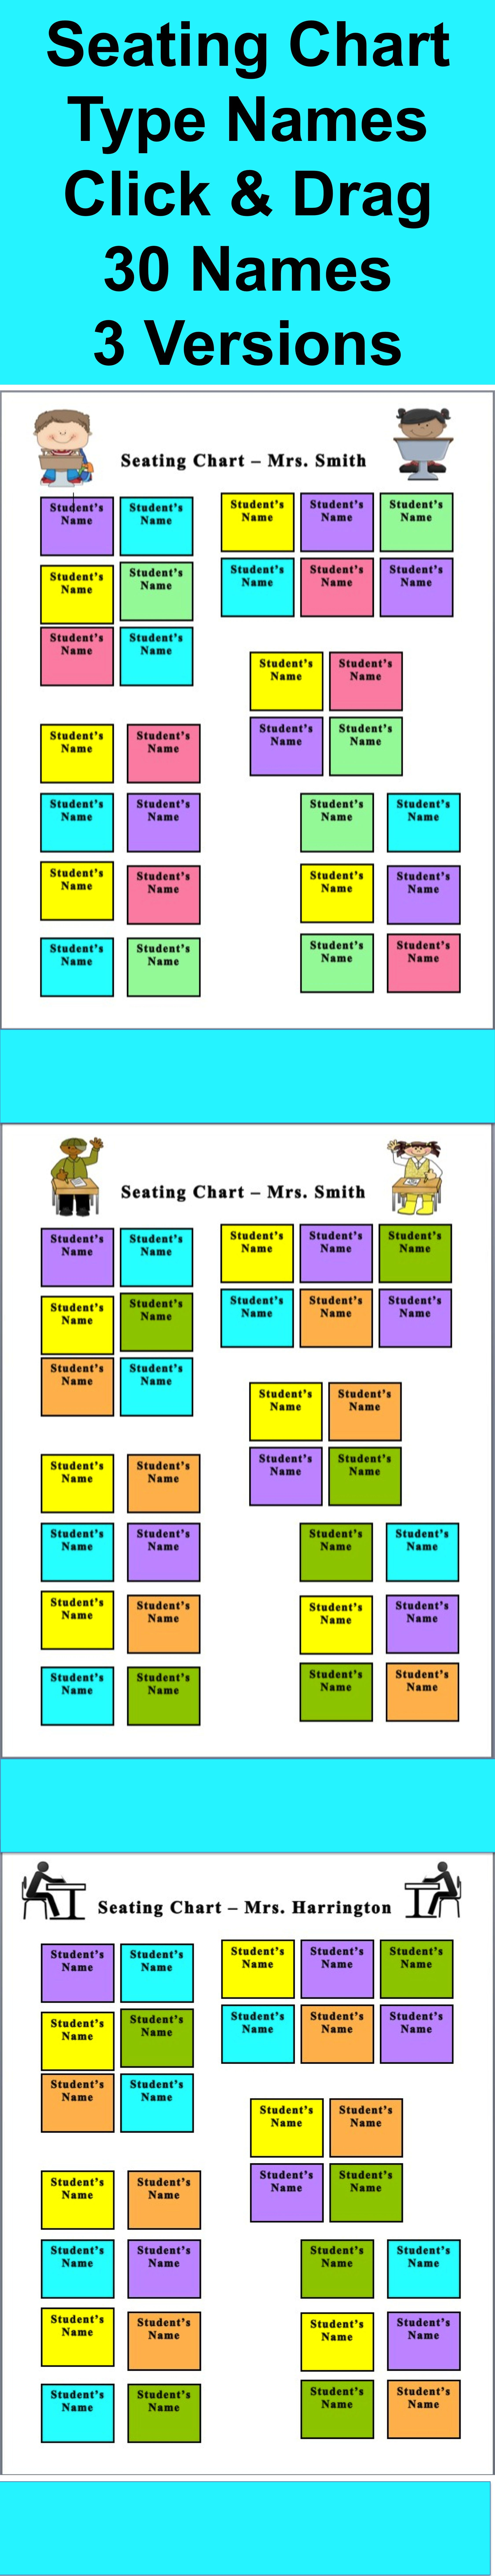 $ Seating Chart – Click and Drag – Type Names – Great for a substitute – Arrange as desks or group together as tables. Room for 30 students. If your classroom has large tables, just group the rectangles together with the appropriate number of students at each table. I have included 3 different sets with clipart appropriate for primary, intermediate and middle or high school teachers. All templates are ready for you to type in your students' names, and click and drag their seats.